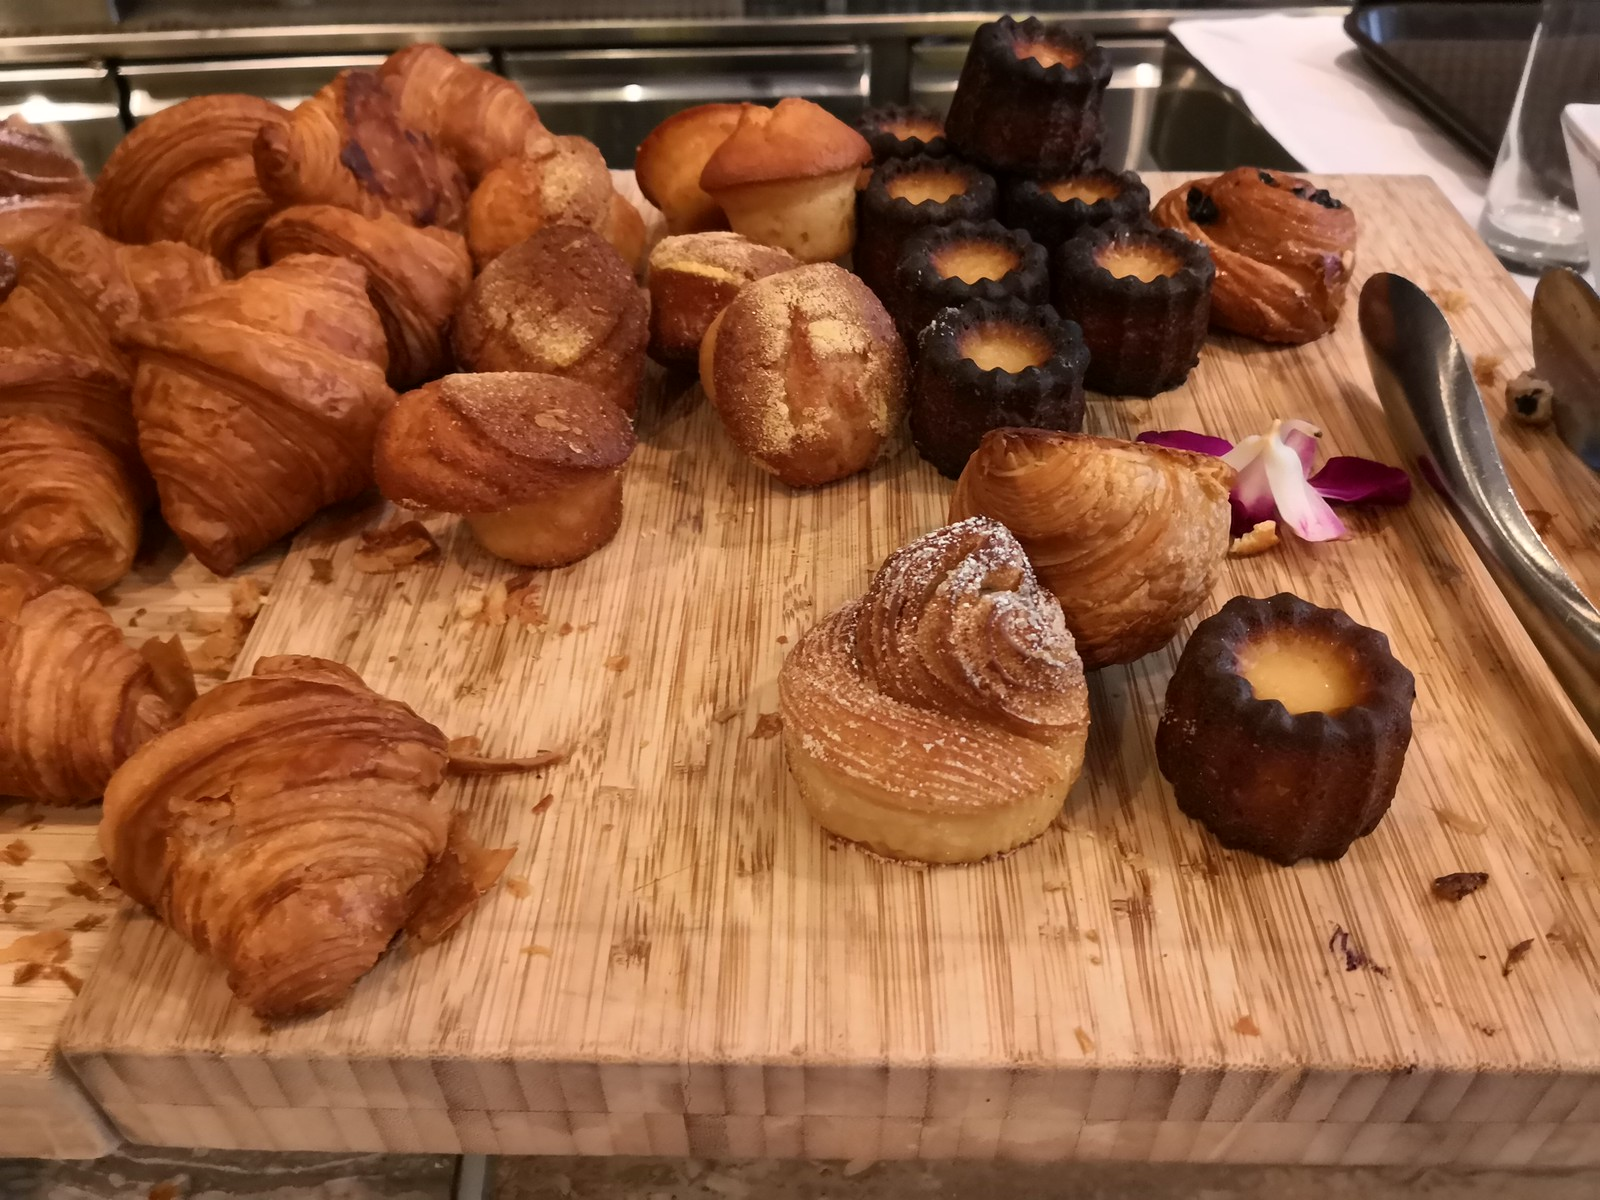 Croissants and caneles